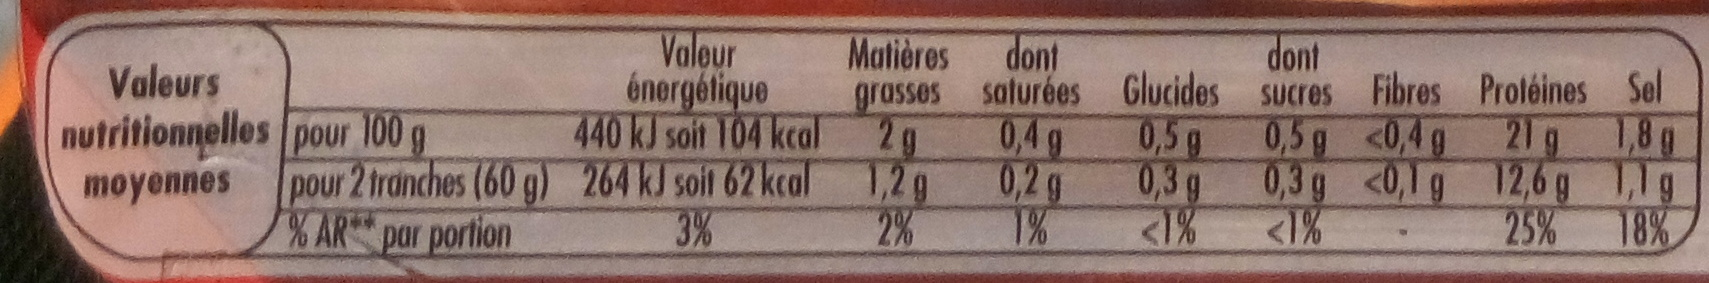 Le Bon Poulet Filet Nature (4 tranches) - Nutrition facts